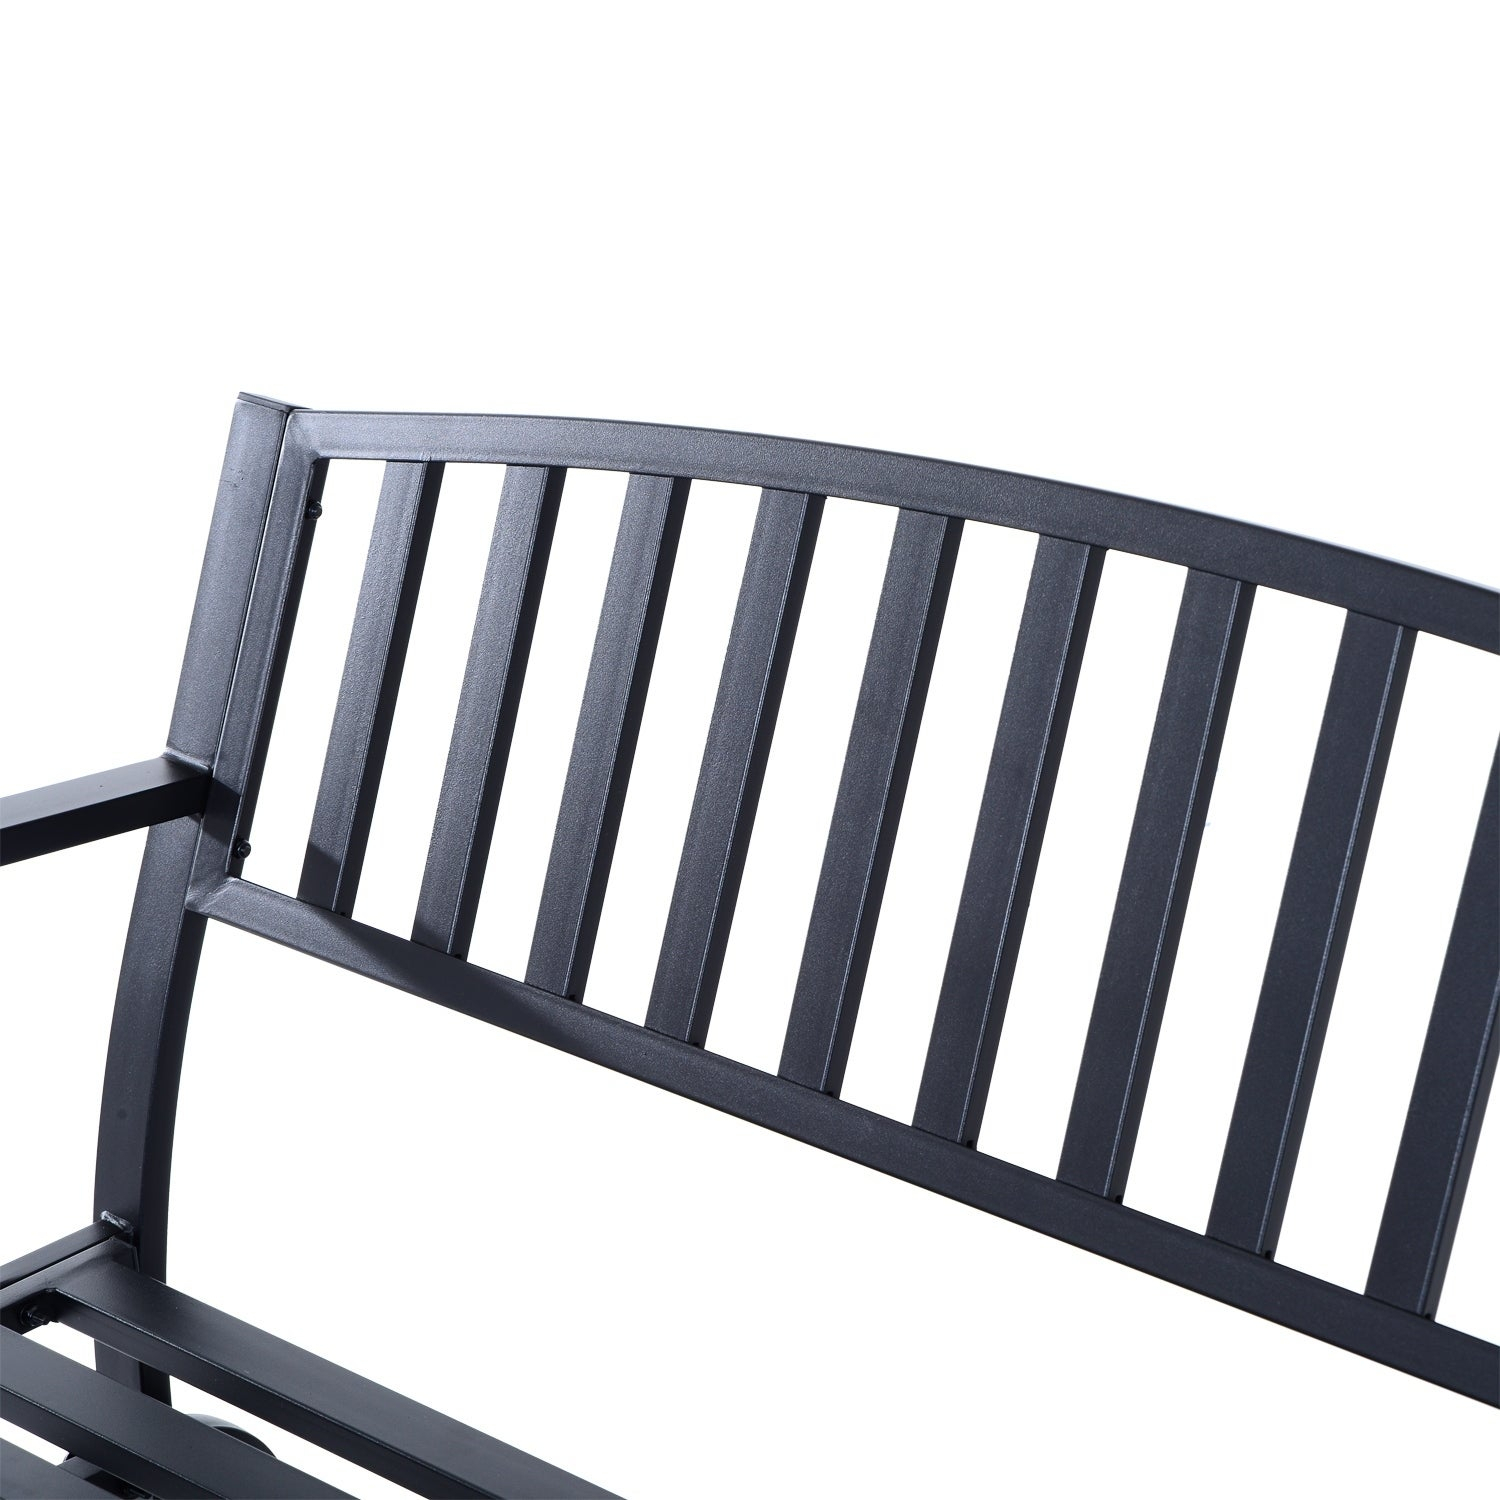 Outsunny 50 Inch Outdoor Steel Patio Swing Glider Bench – Black Within Black Steel Patio Swing Glider Benches Powder Coated (Image 22 of 25)